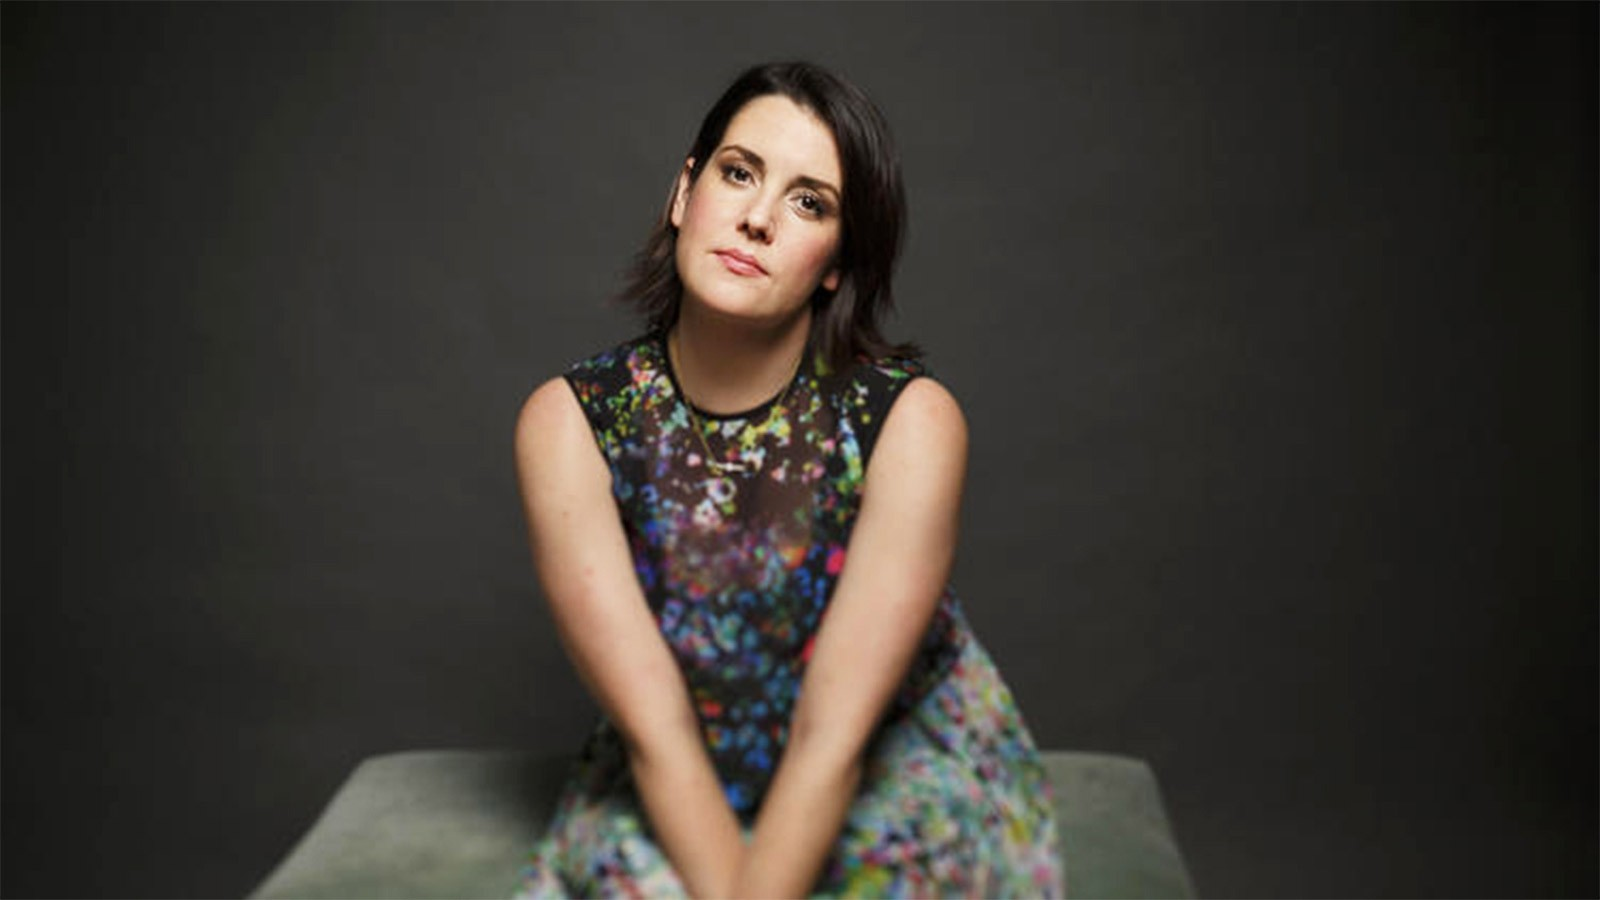 Paparazzi Melanie Lynskey naked (39 photo), Topless, Cleavage, Boobs, lingerie 2017